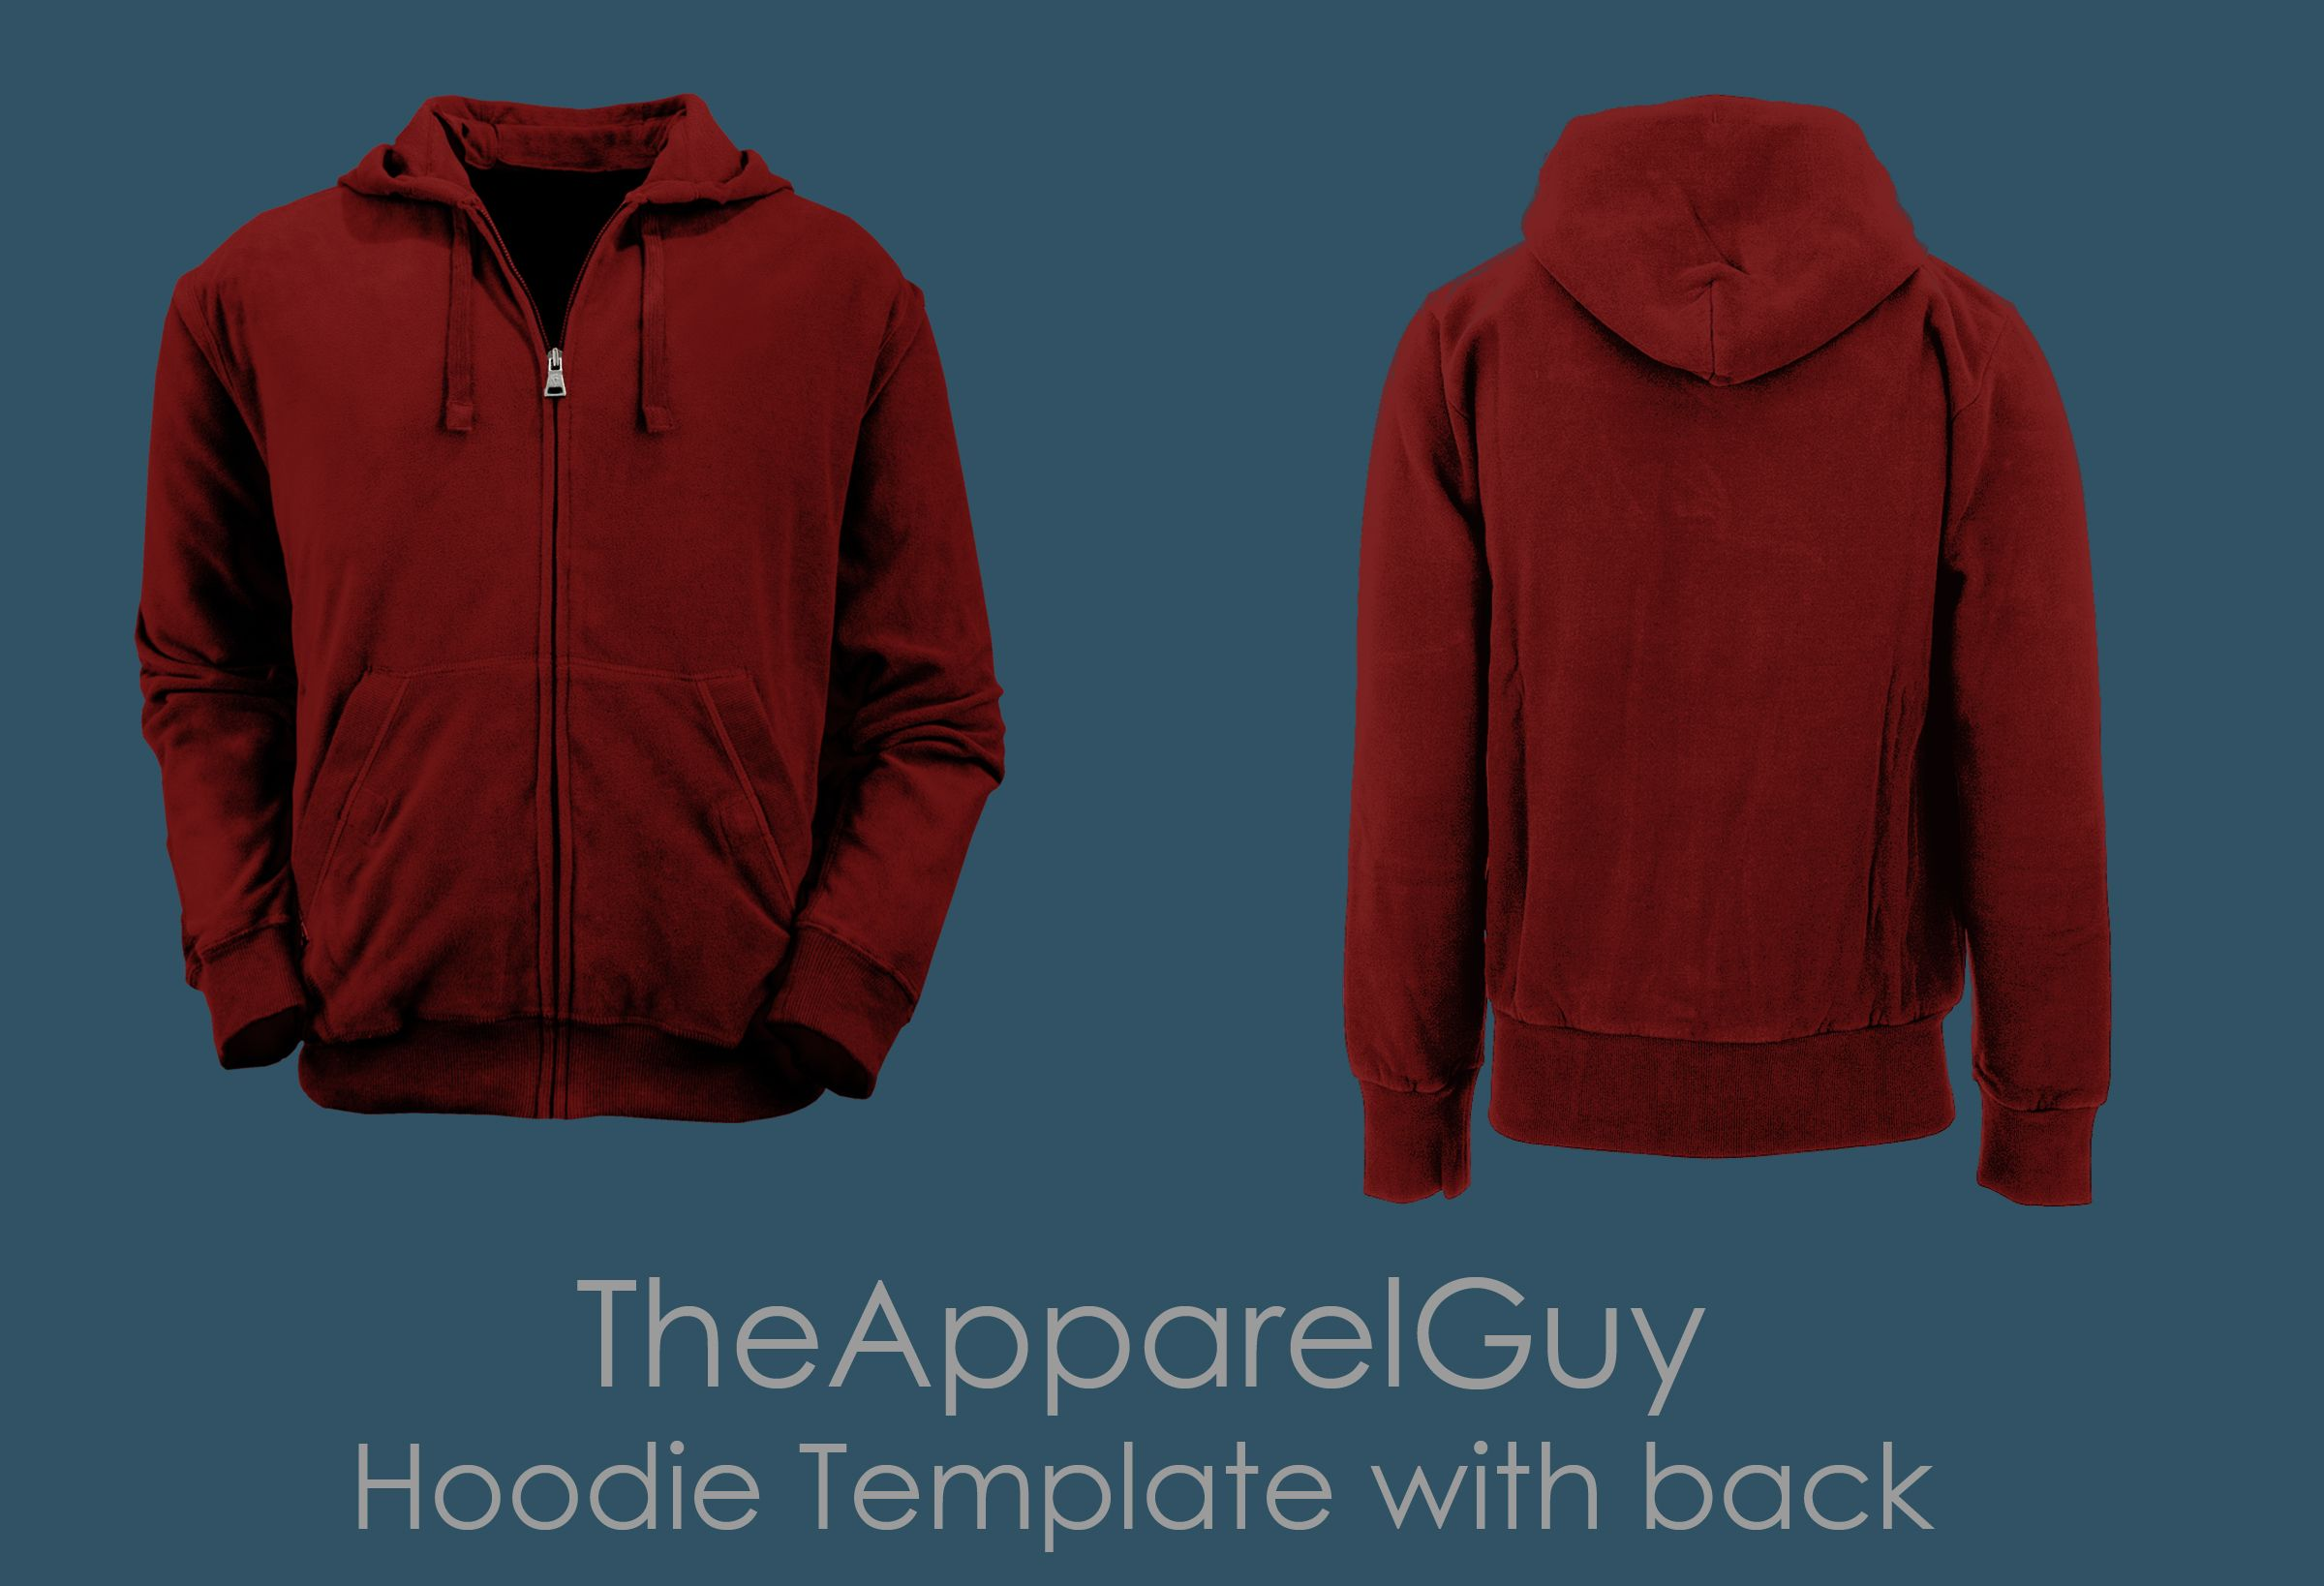 Download Hoodie Template With Back Hoodie Template Hoodie Mockup Free Hoodies